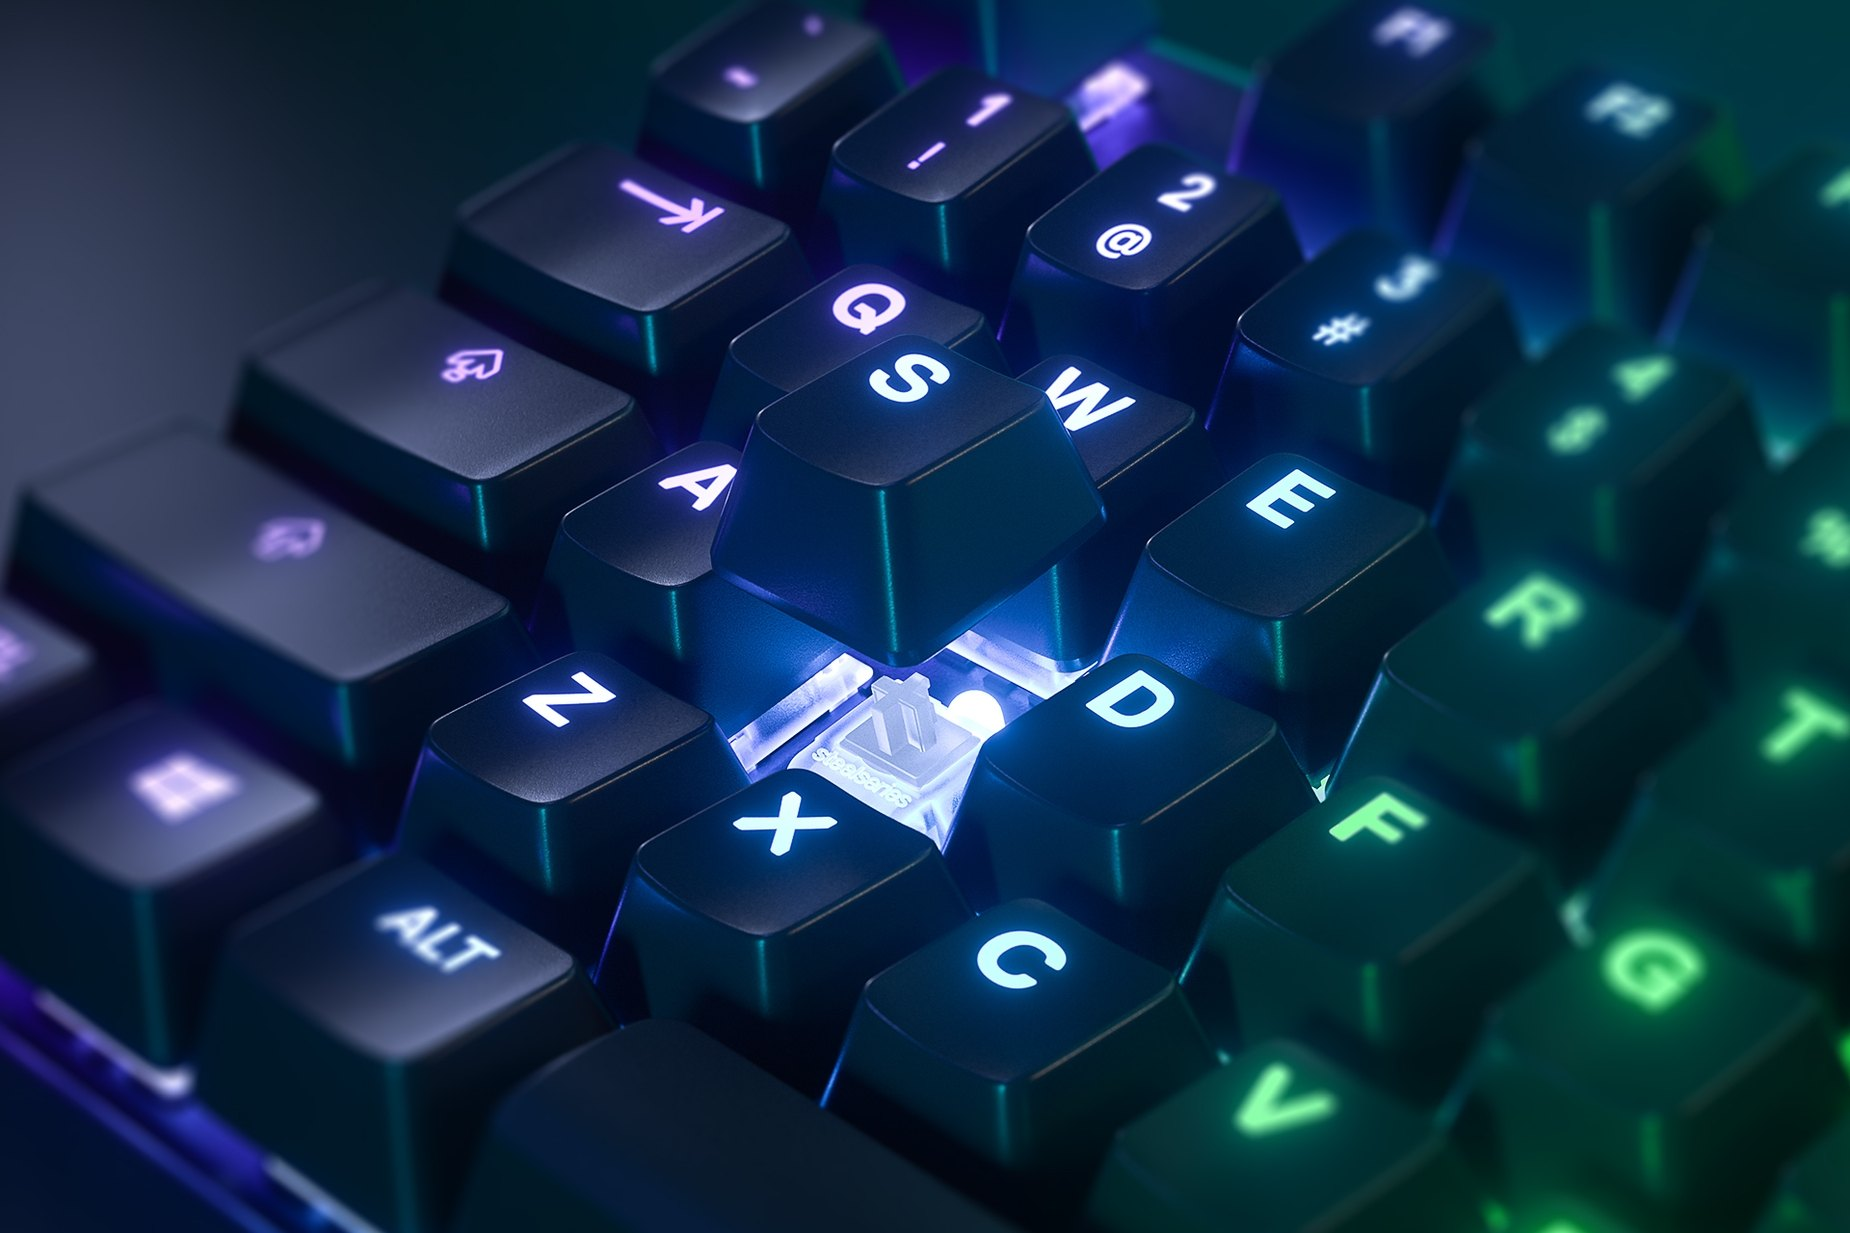 Zoomed in view of a single key on the Thai - Apex Pro gaming keyboard, the key is raised up to show the SteelSeries OmniPoint Adjustable Mechanical Switch underneath